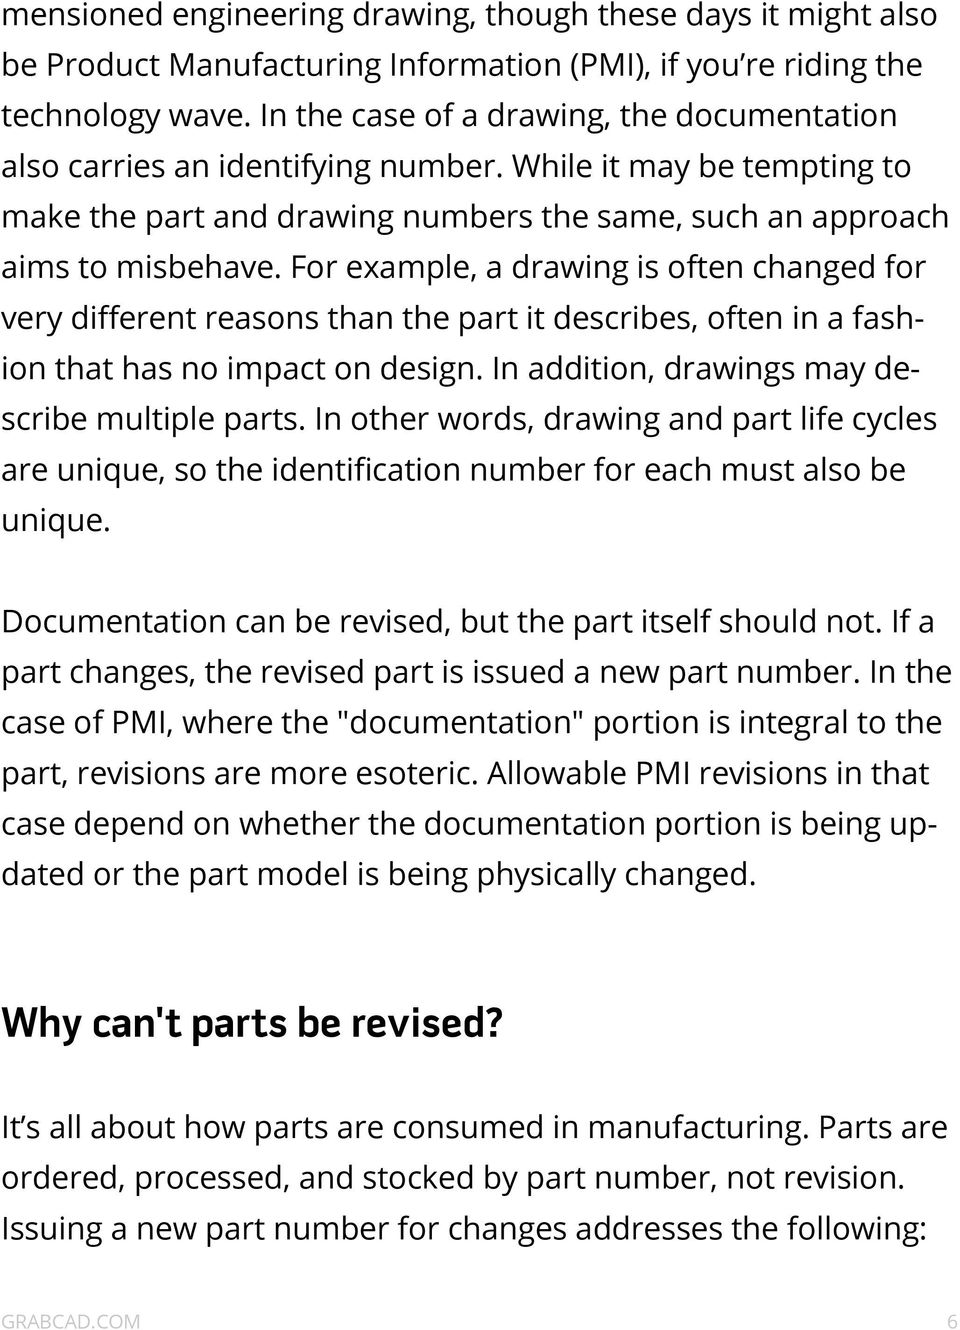 For example, a drawing is often changed for very different reasons than the part it describes, often in a fashion that has no impact on design. In addition, drawings may describe multiple parts.